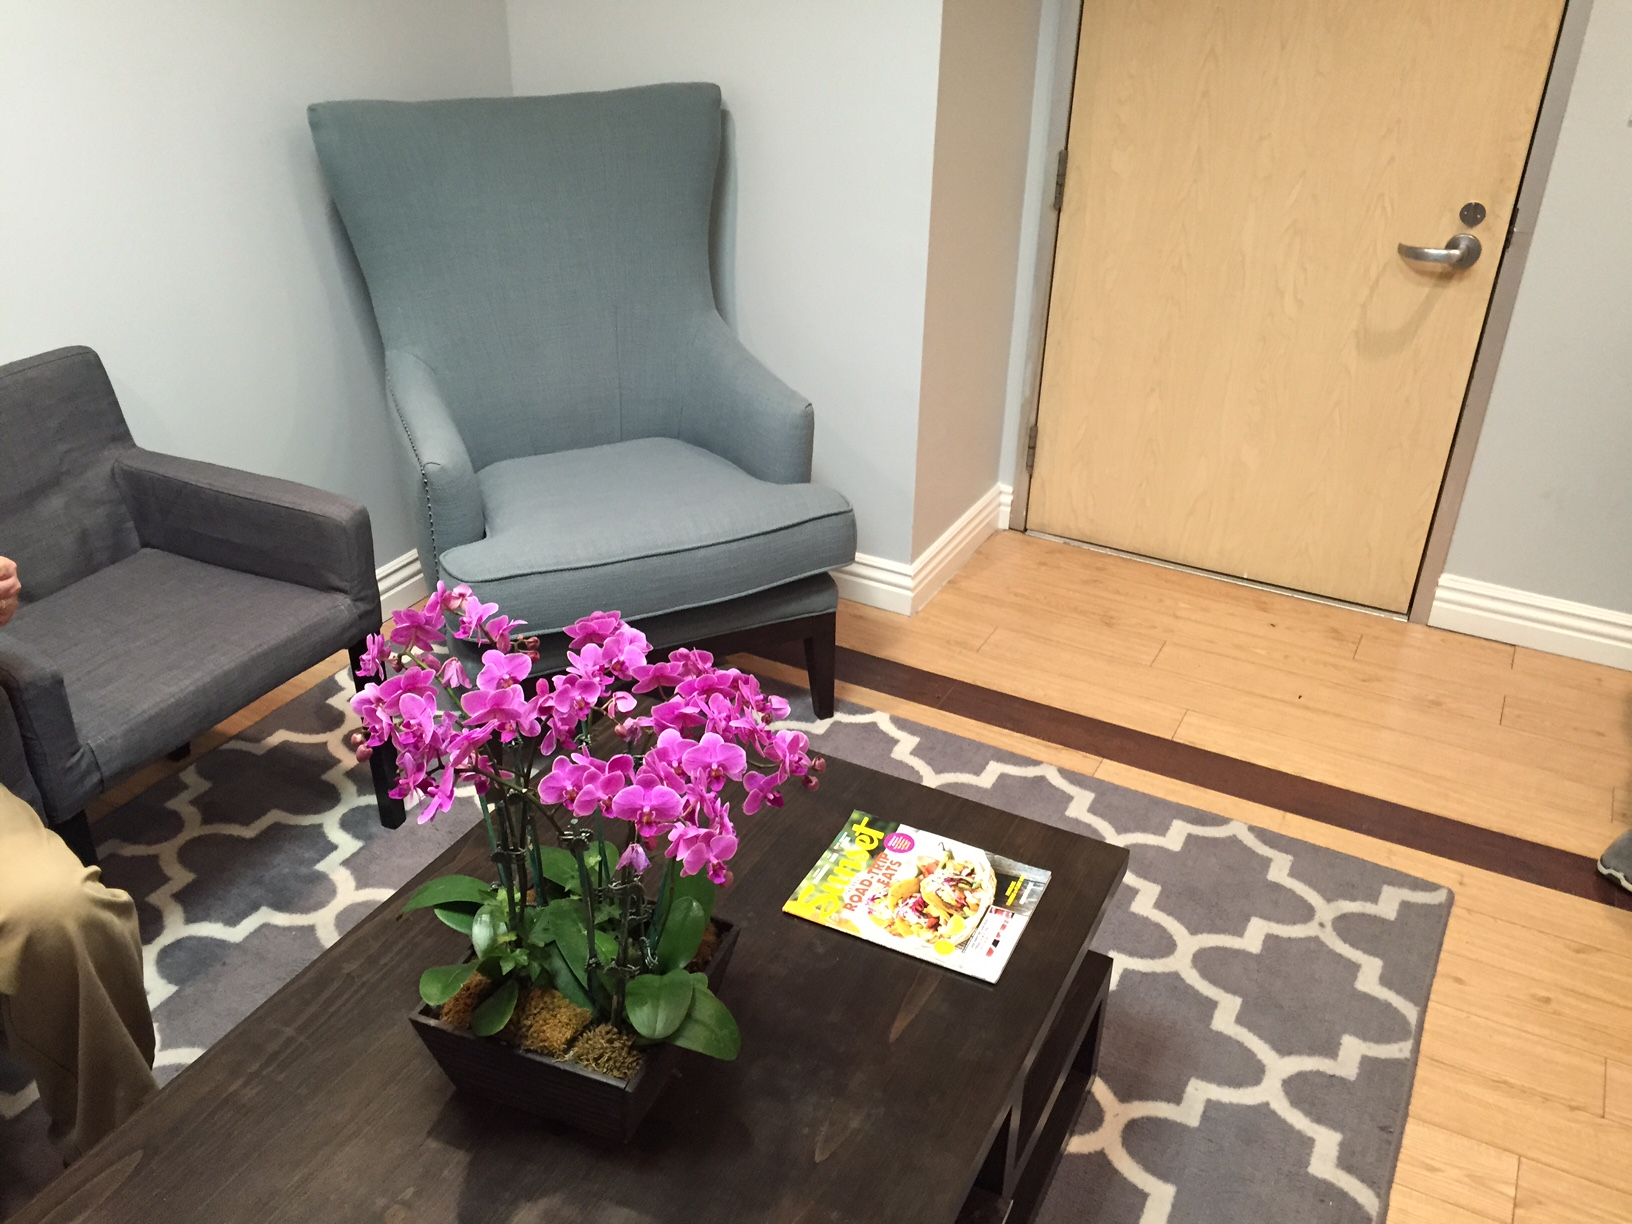 Beverly Hills Family Medicine Physician and Sports Medicine Waiting Room